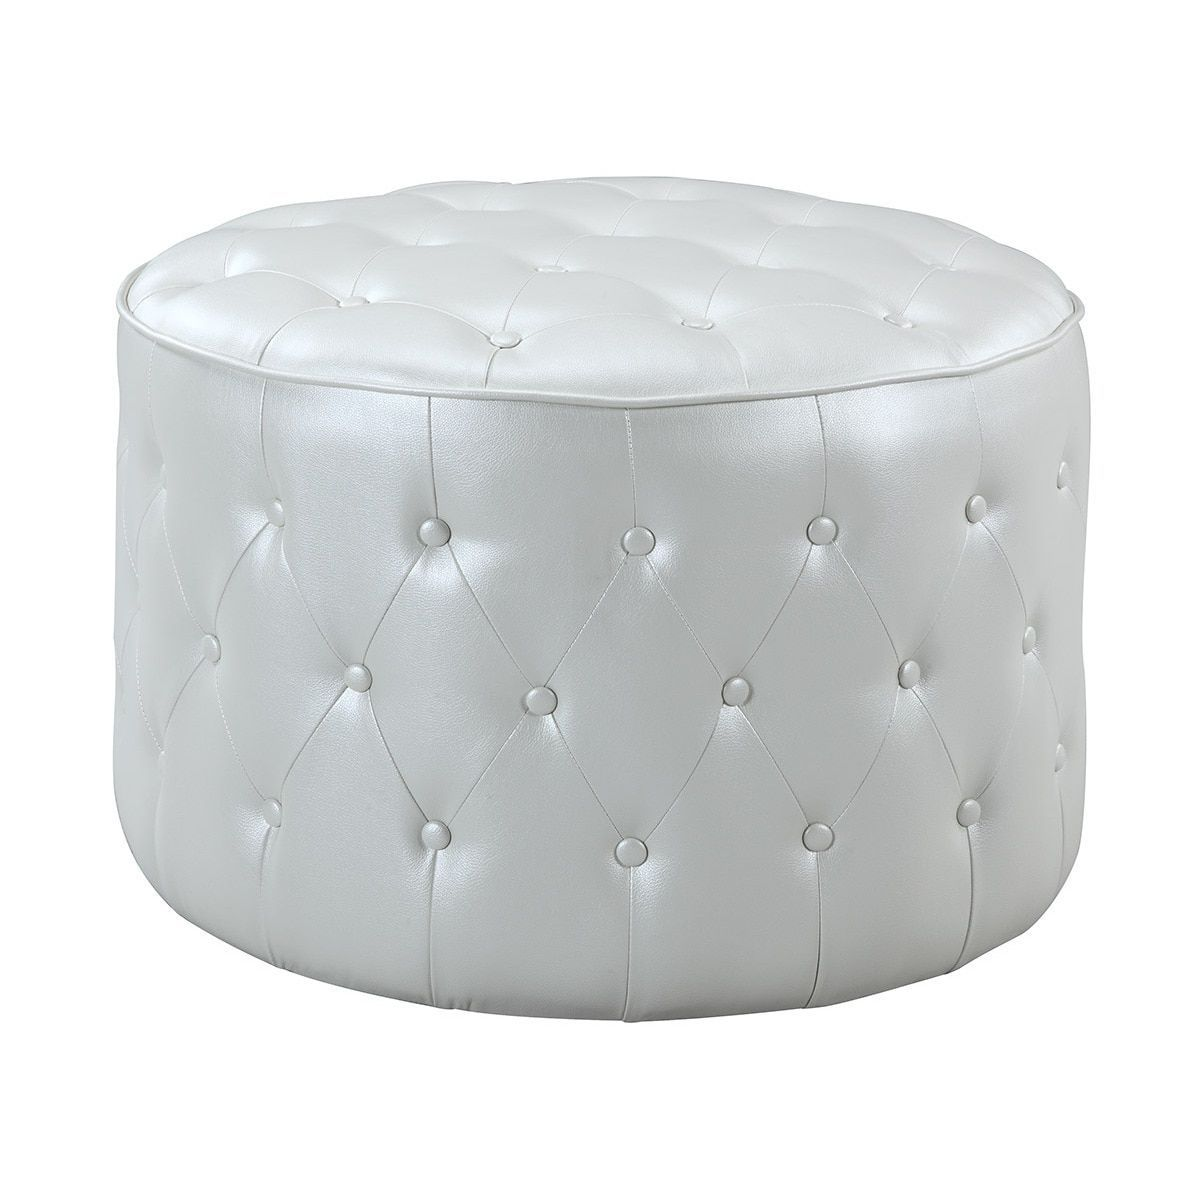 Chic Home Marley Leather Button-tufted Round Pouf Ottoman (Marley ...